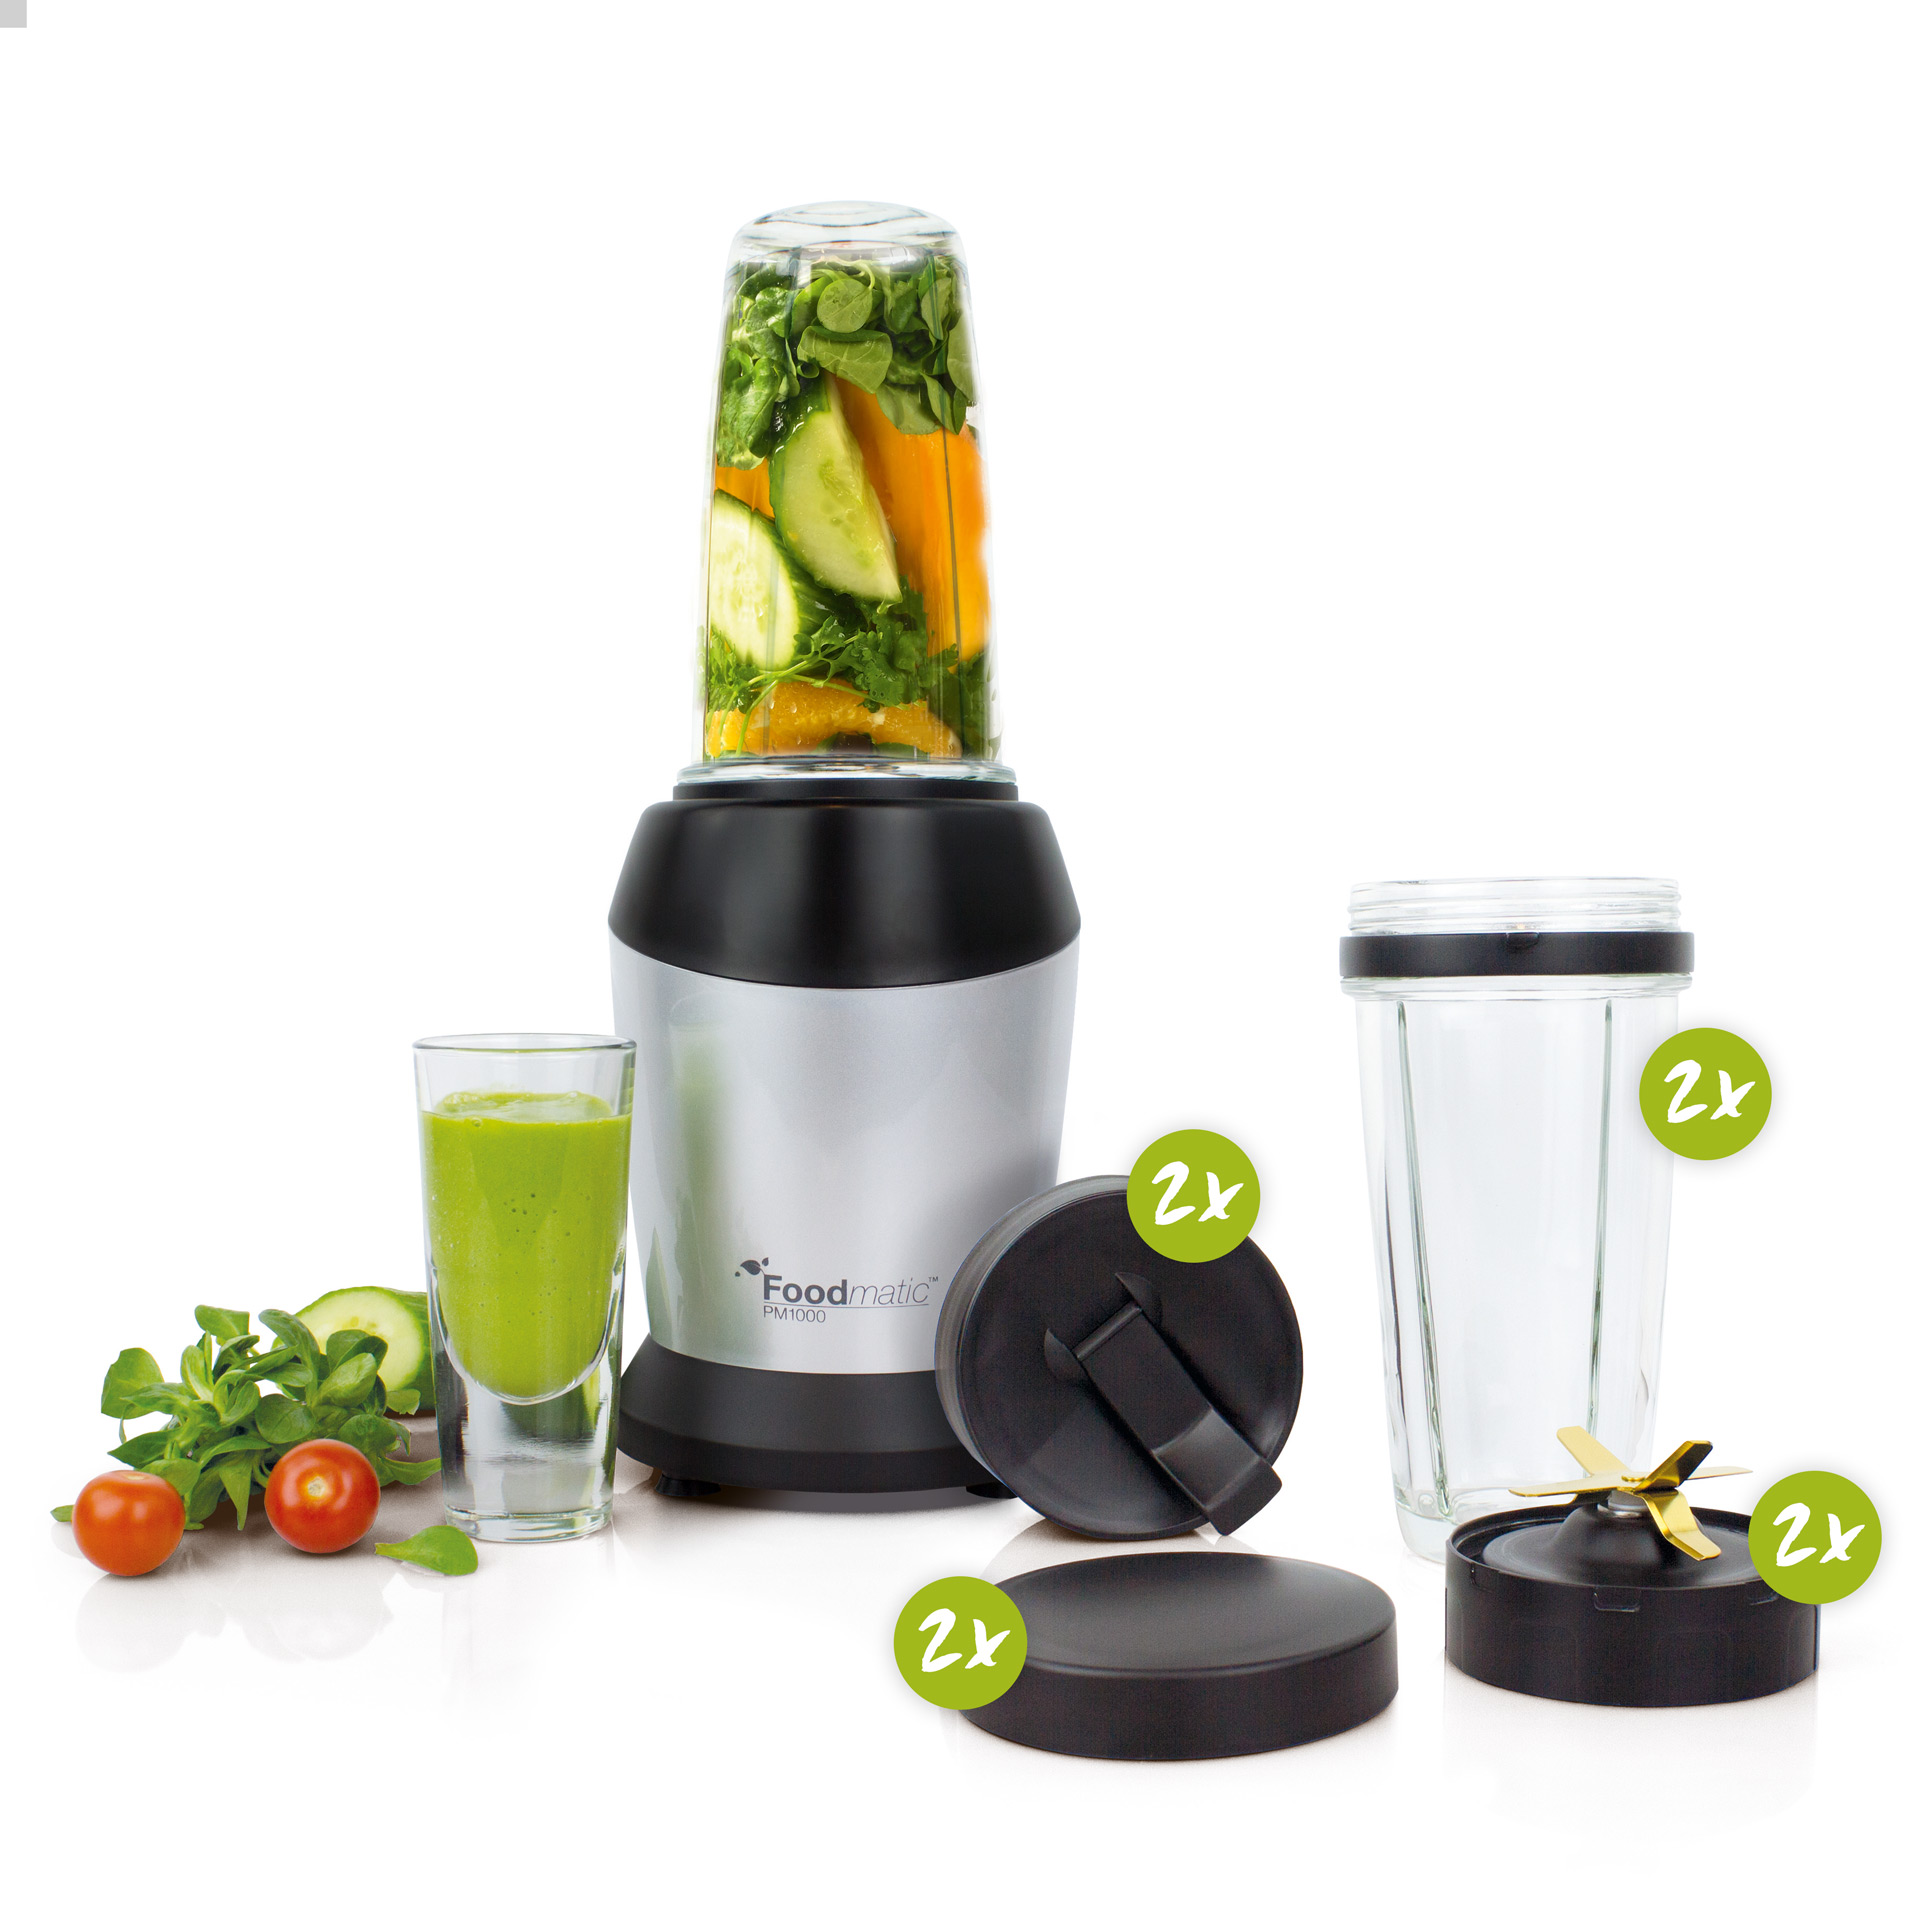 Foodmatic Personal Mixer PM1000 GXL